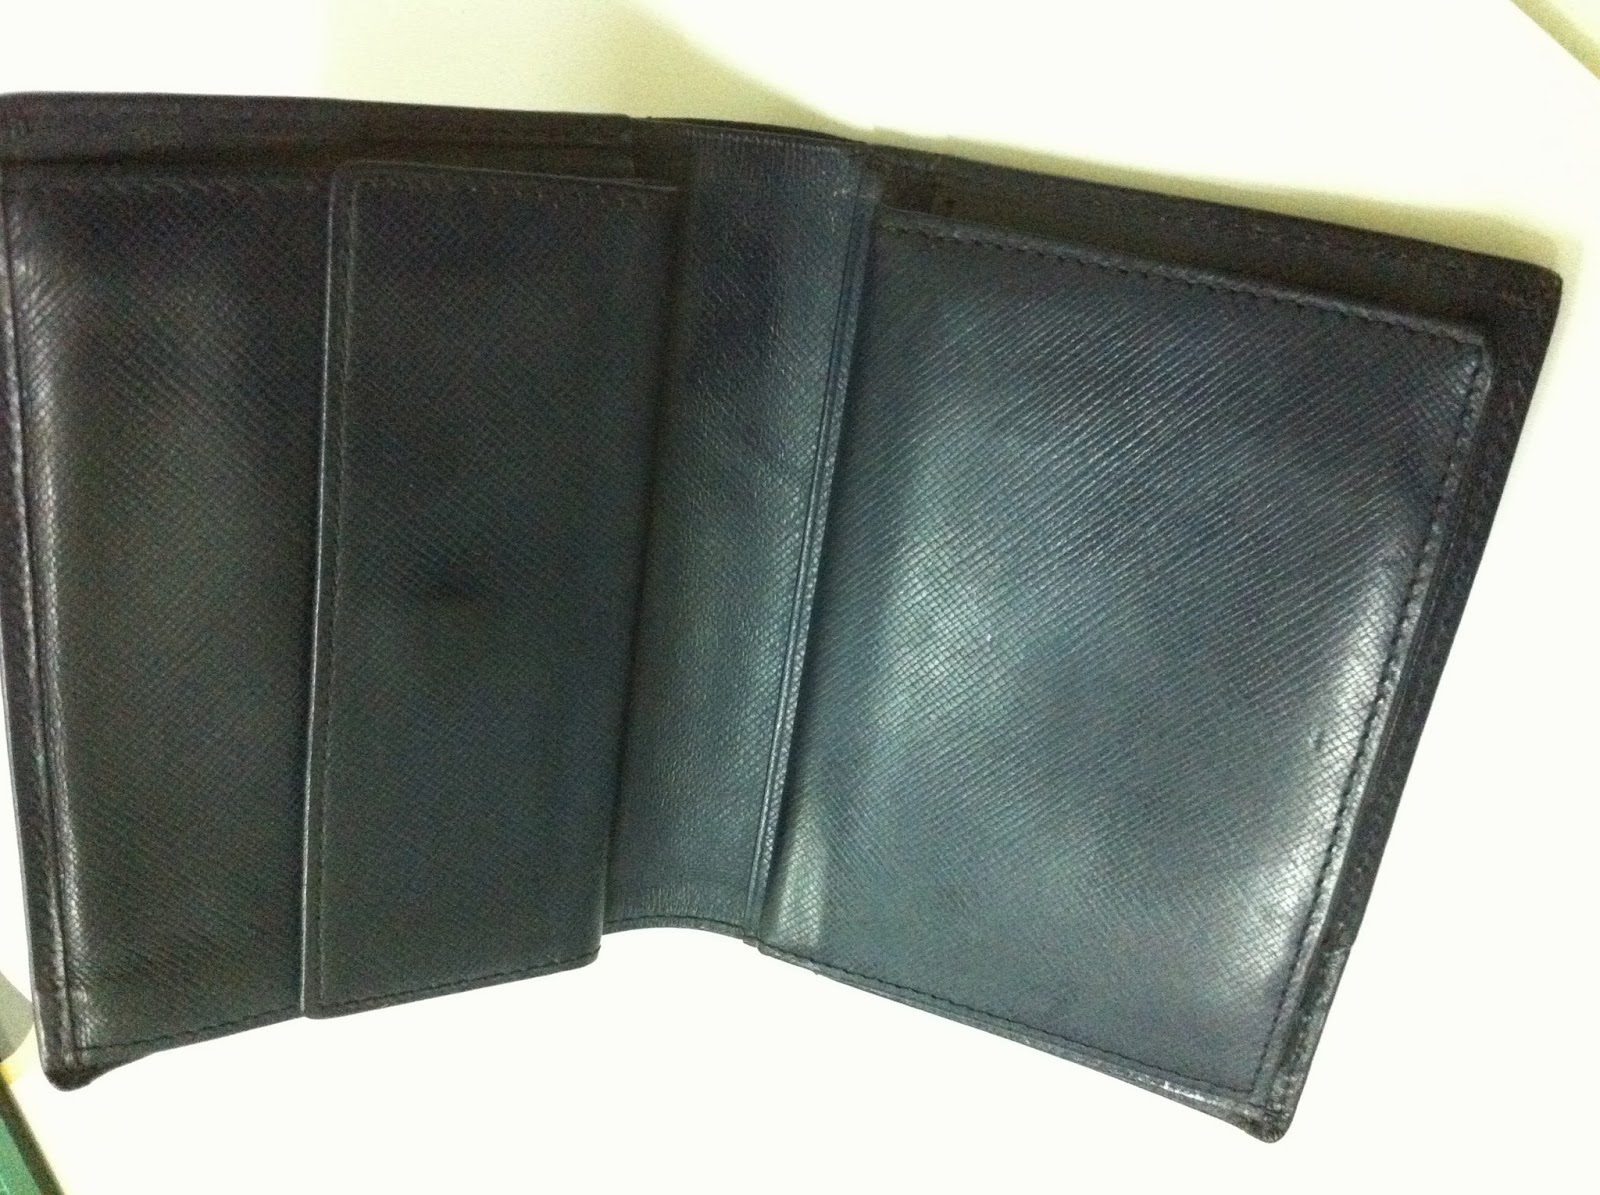 dybundle collection  authentic louis fontaine leather wallet  sold